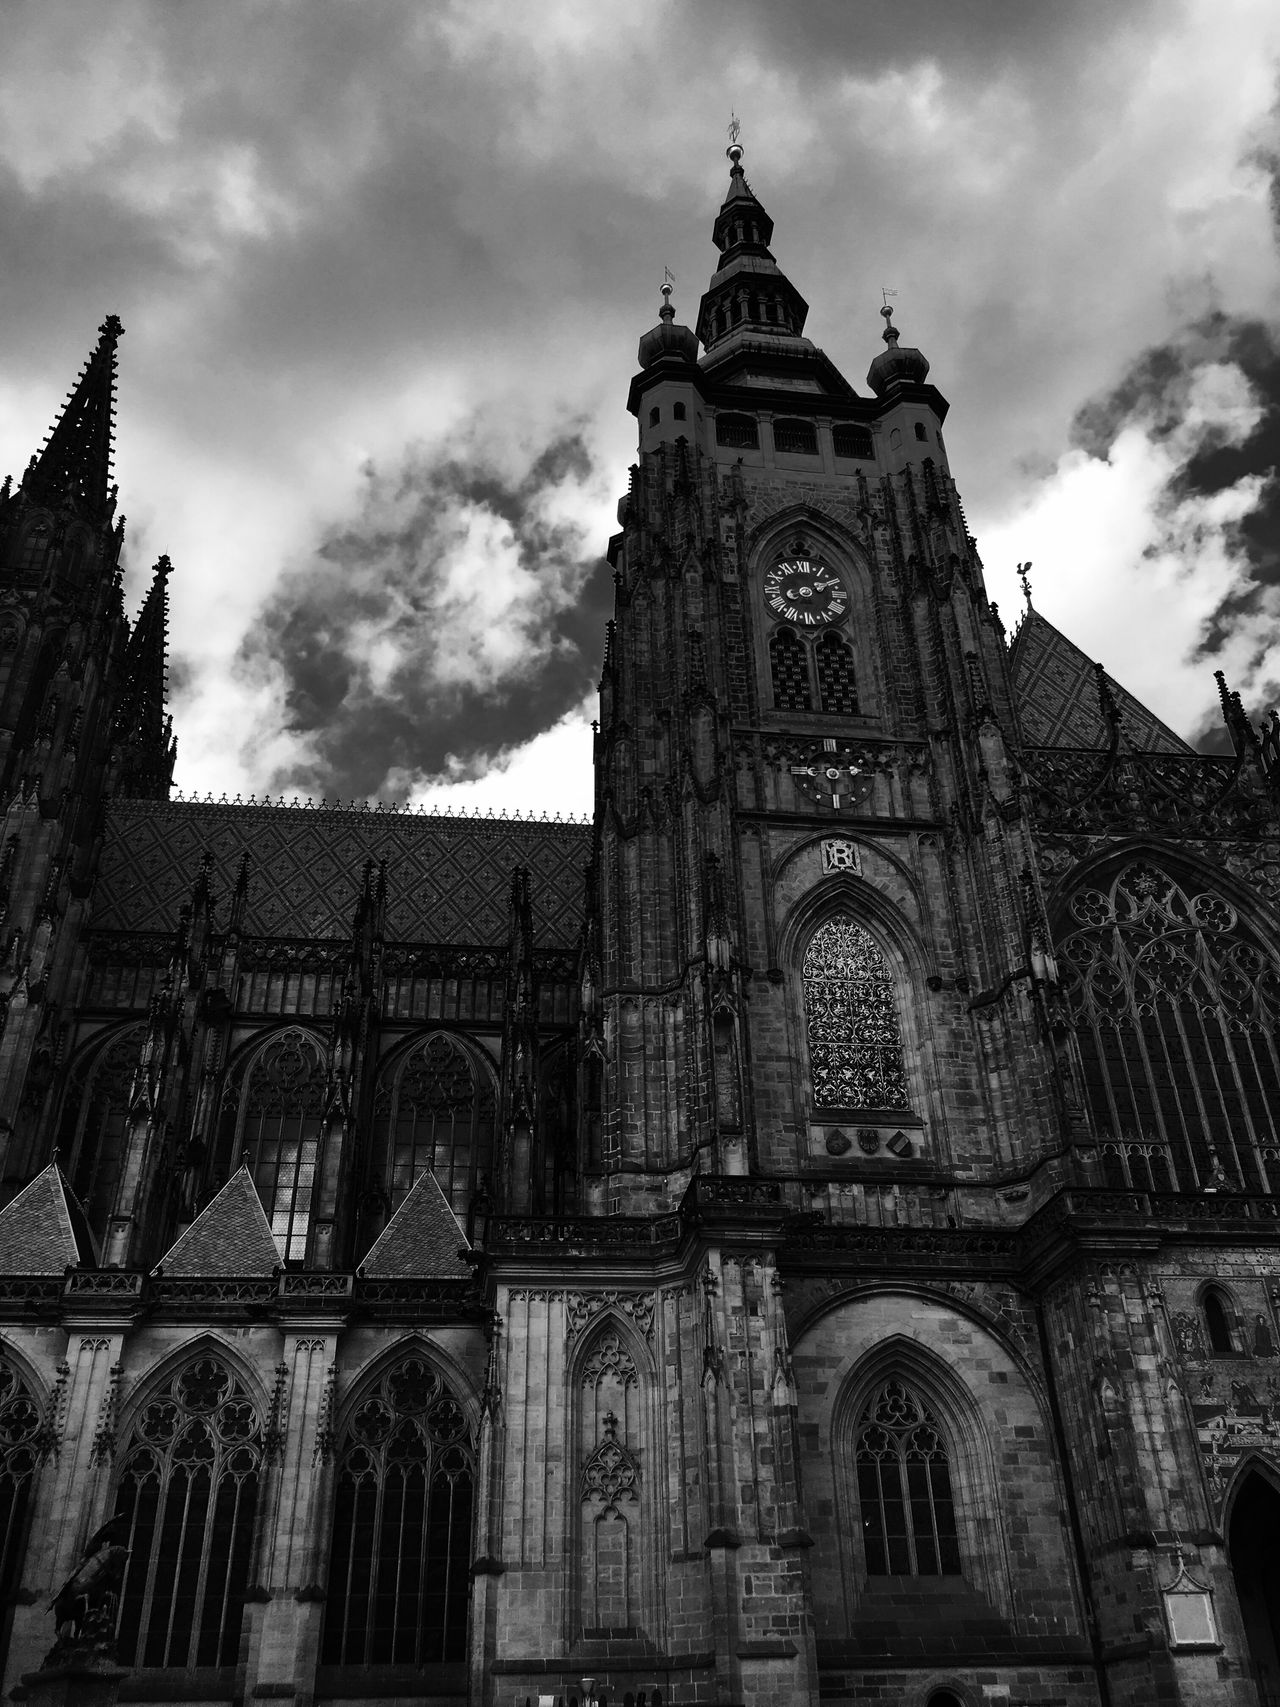 Prague Praha Czech Republic Architecture Place Of Worship Religion Spirituality Building Exterior Built Structure No People Travel Destinations Sky Passionpassport Symmetrykillers Buildinglover Symmetricalmonsters Symmetry Urbanromantix Beautifulmatters Neverstopexploring  Exploretocreate Gothic Gothic Style Cathedral Blackandwhite